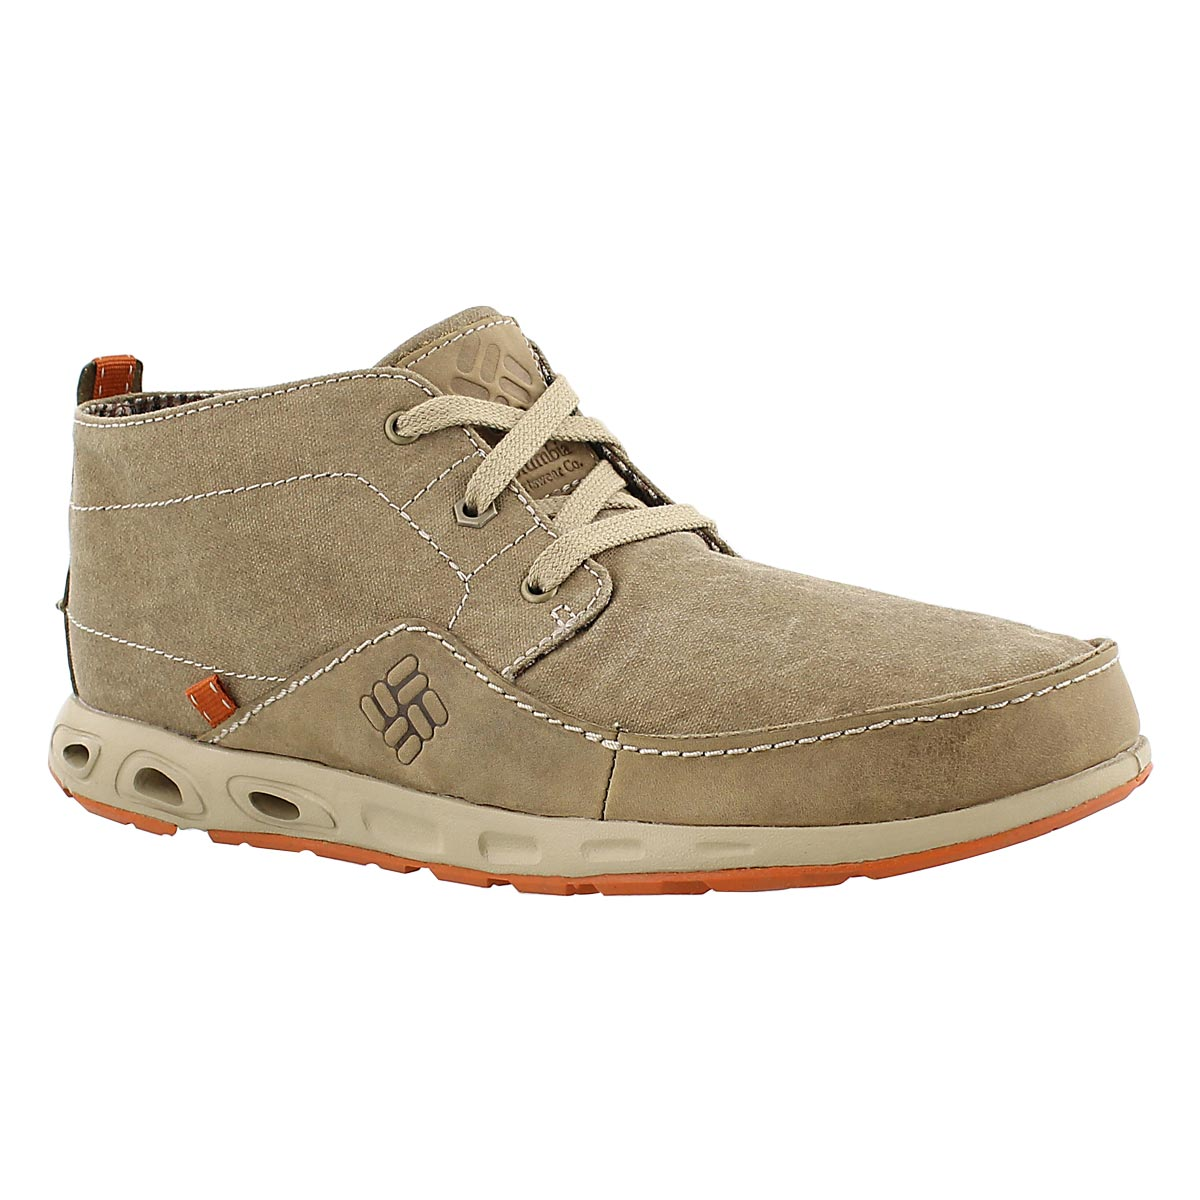 Mns Sunvent Chukka flax casual boot